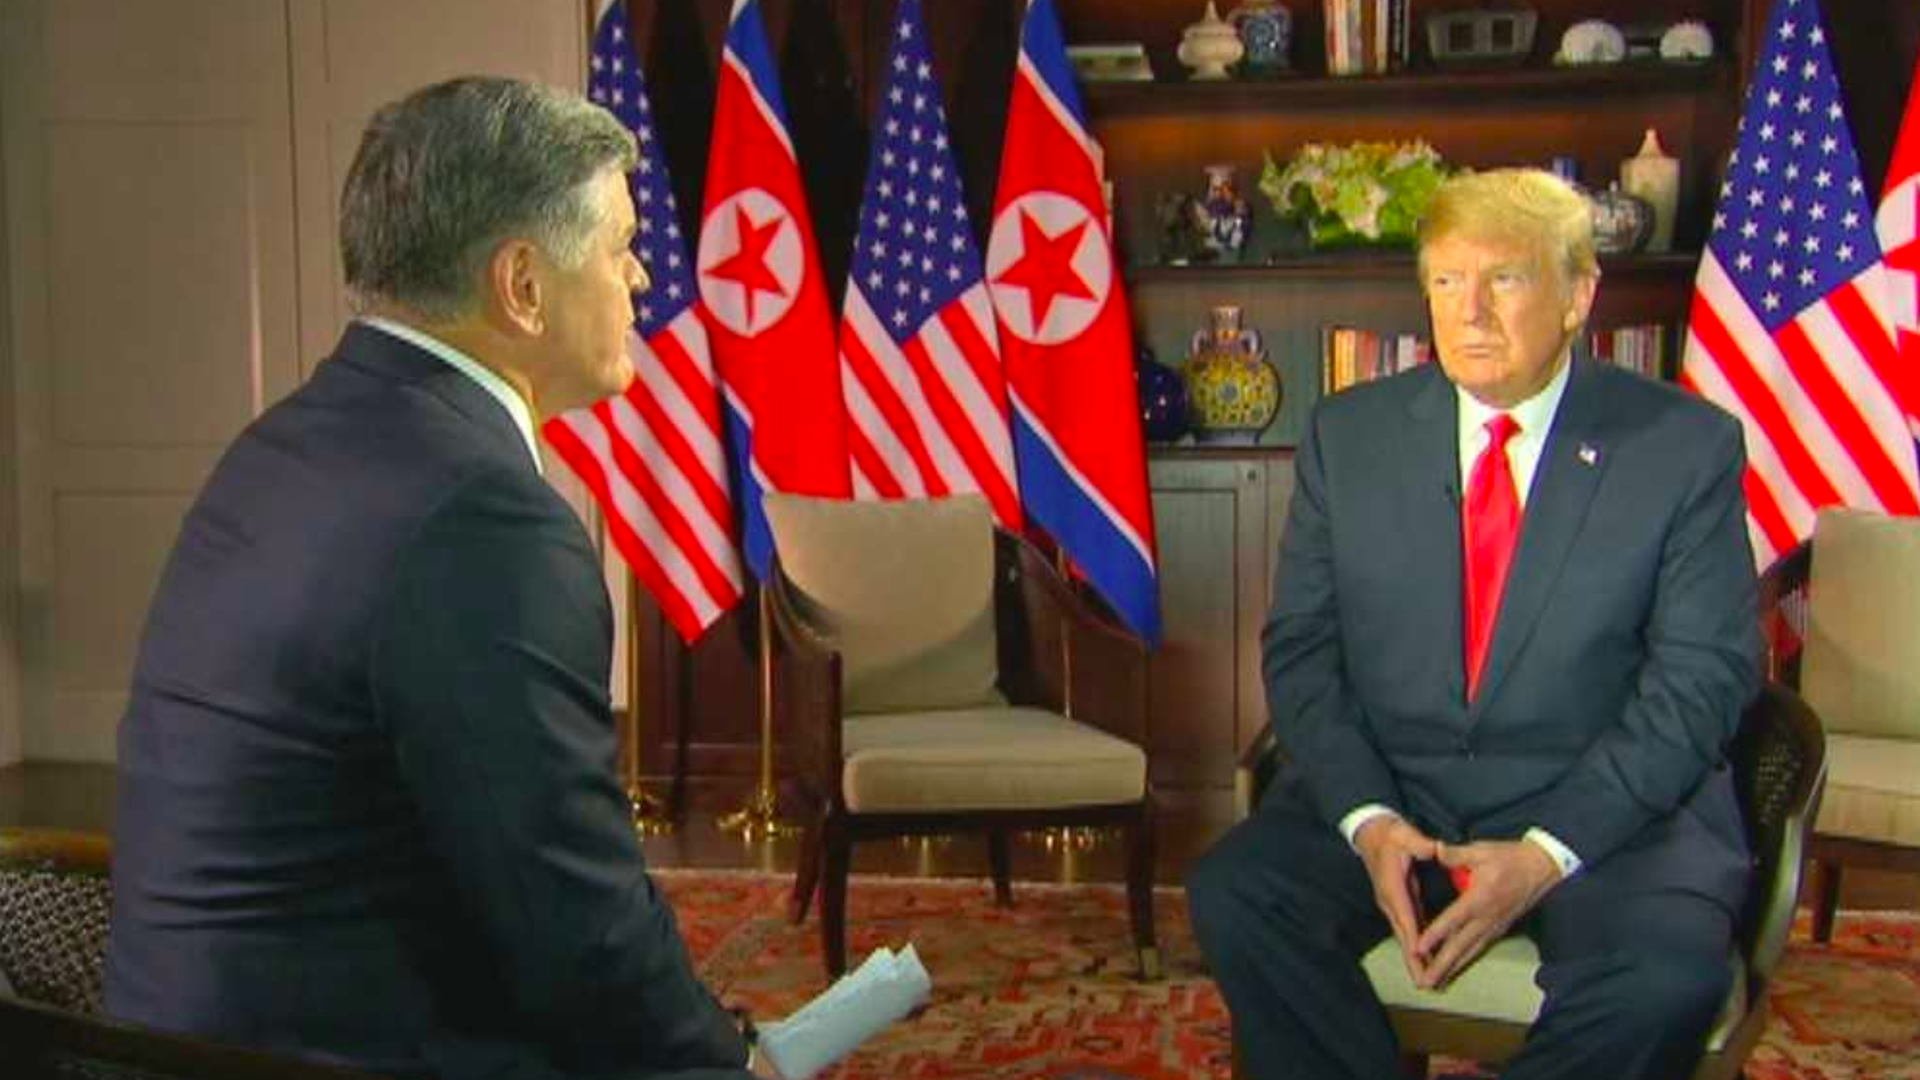 Hannity interviews Trump